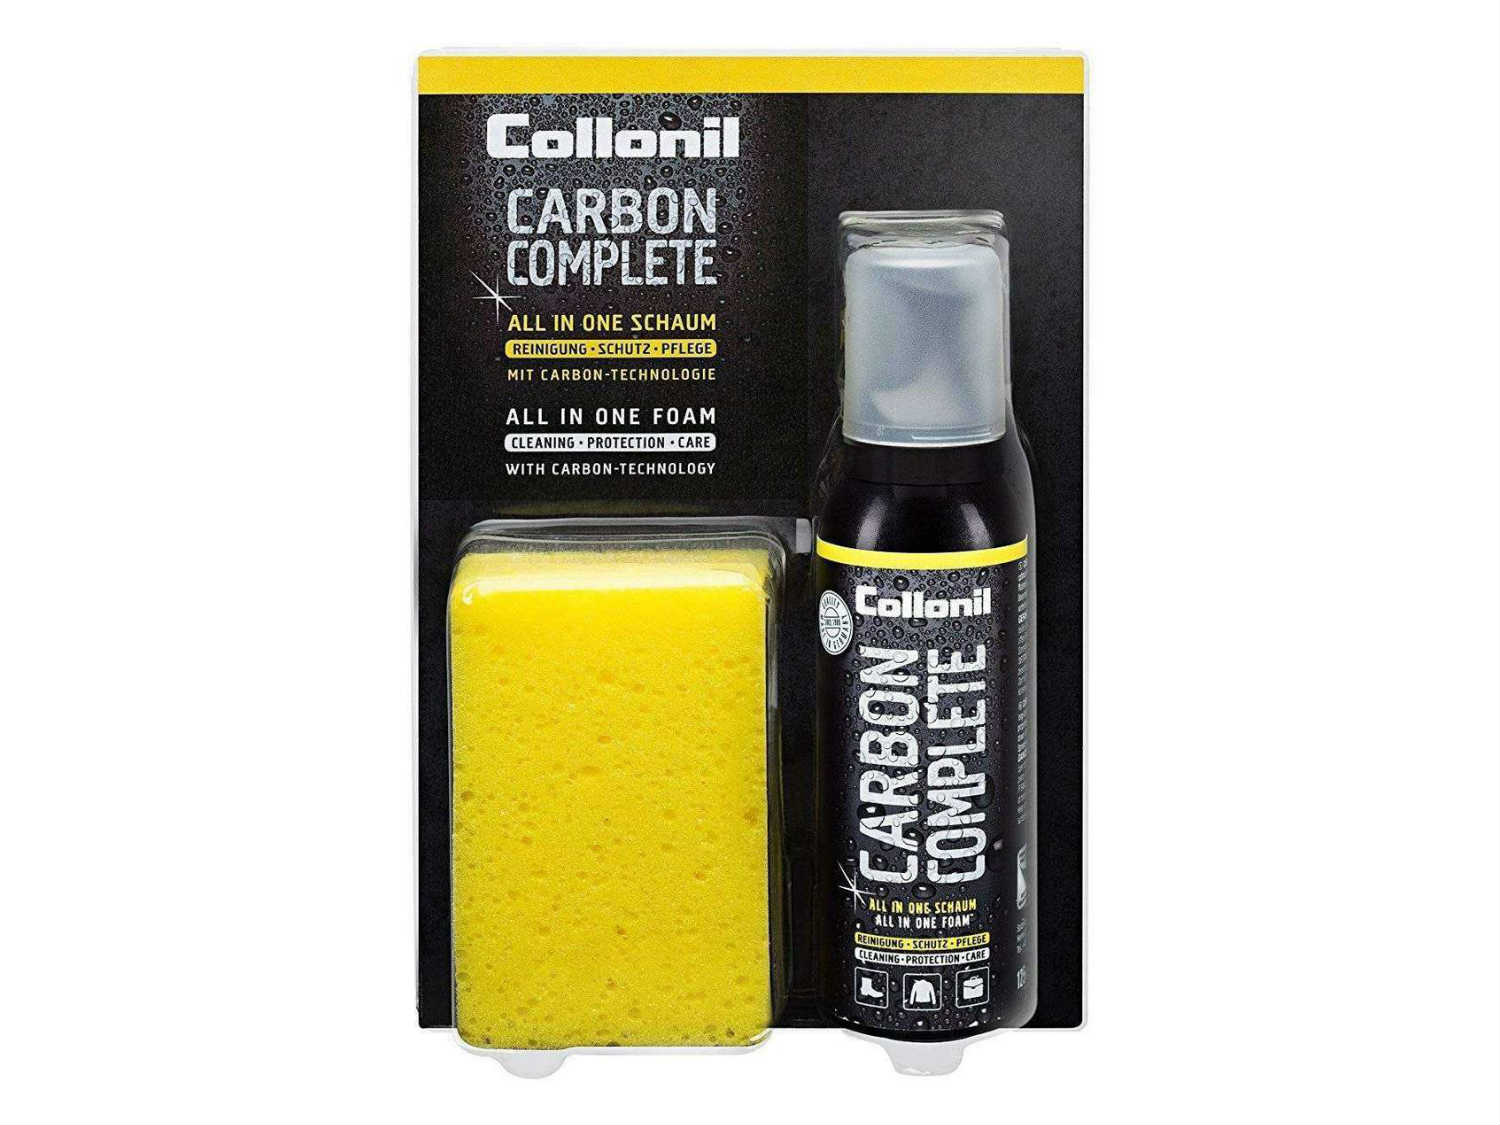 Collonil Carbon Complete all-in-one voor alle materialen